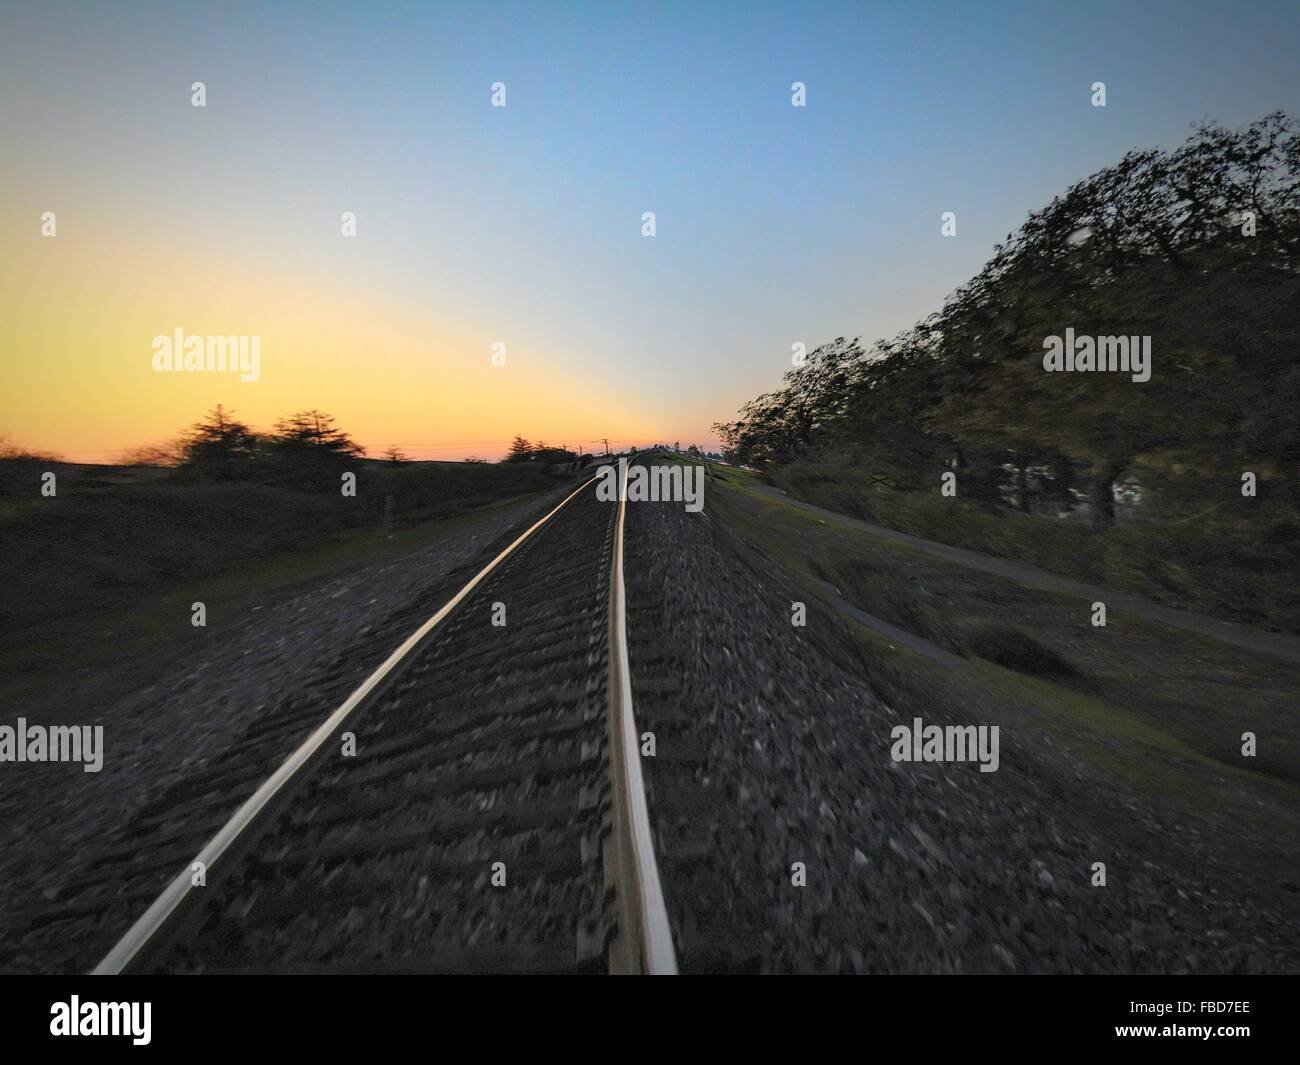 Railroad Track On Field Against Sky - Stock Image